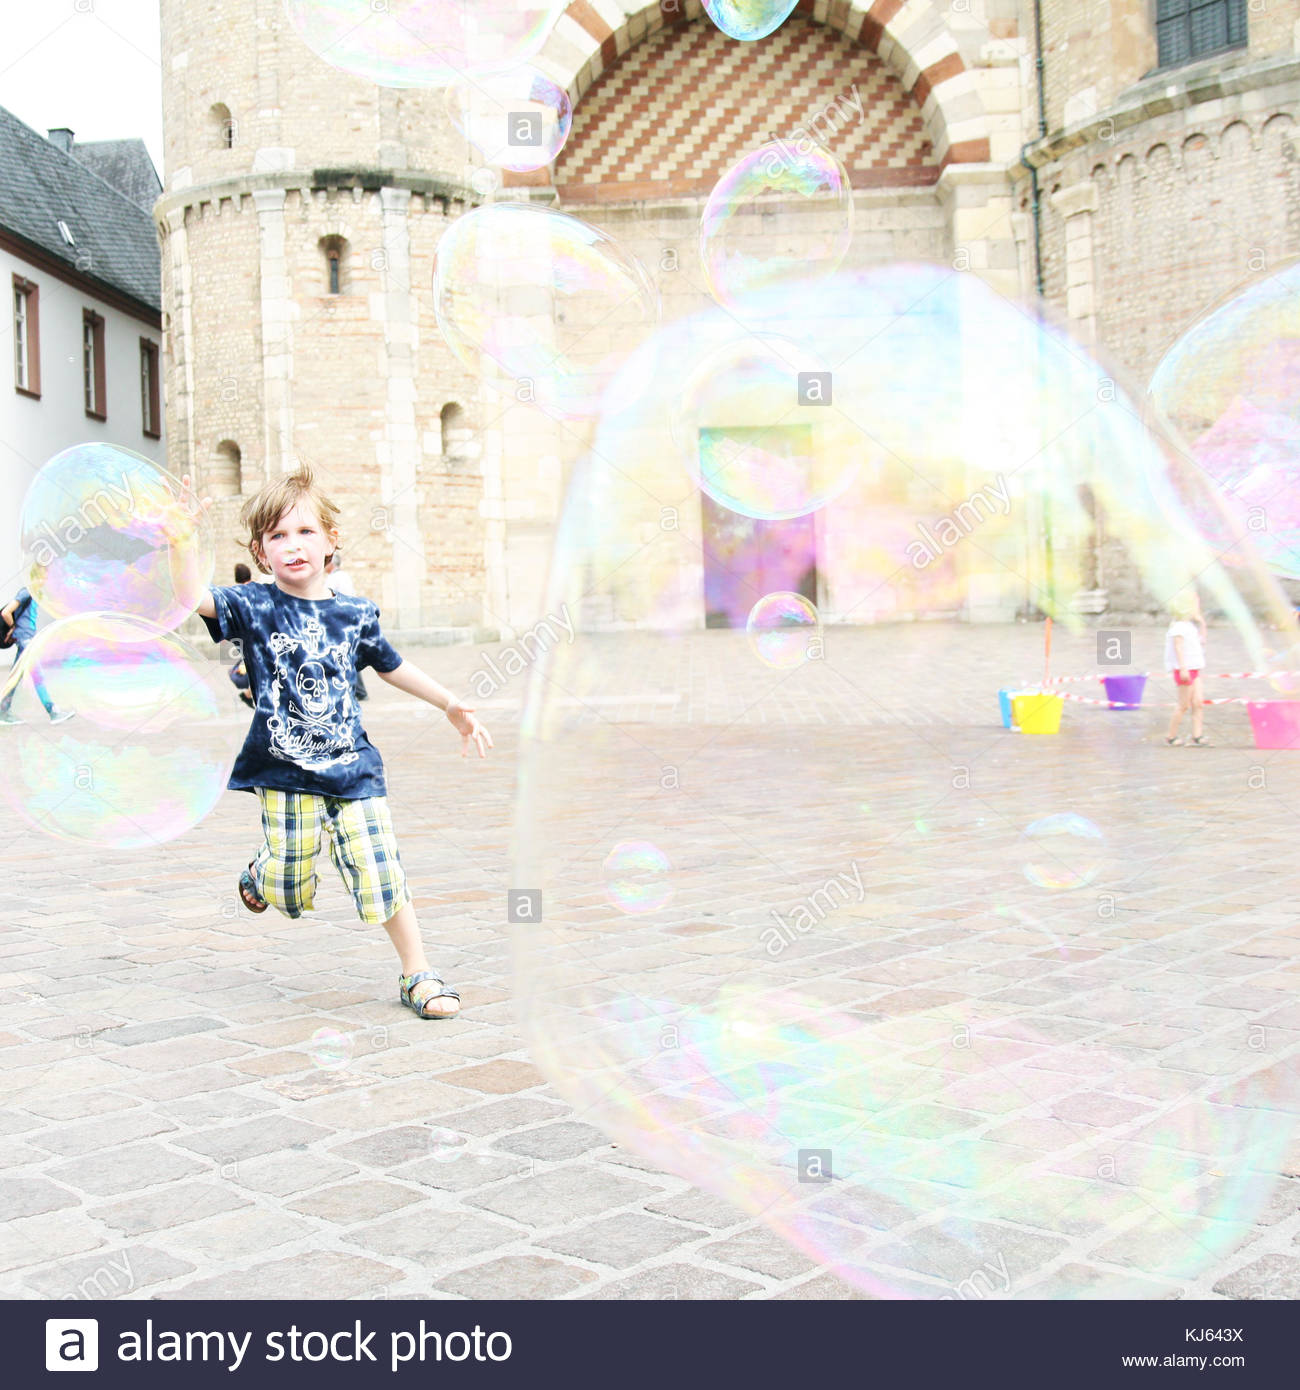 Young boy playing with soap bubbles in the square - Stock Image